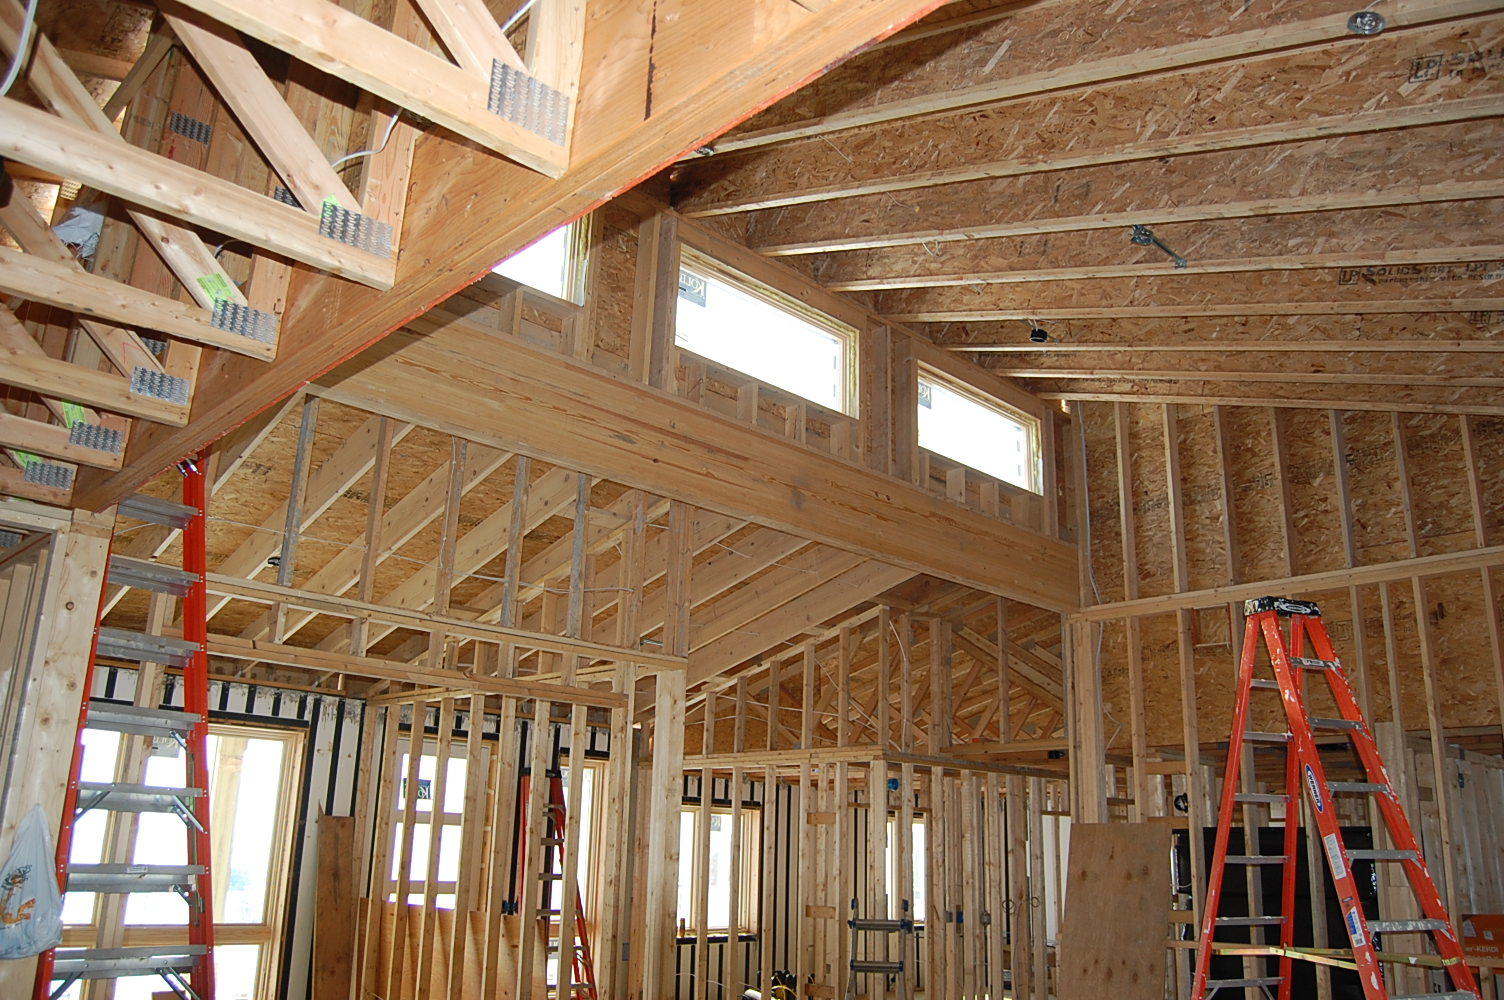 Clerestory roof pictures to pin on pinterest pinsdaddy for Clear story roof design